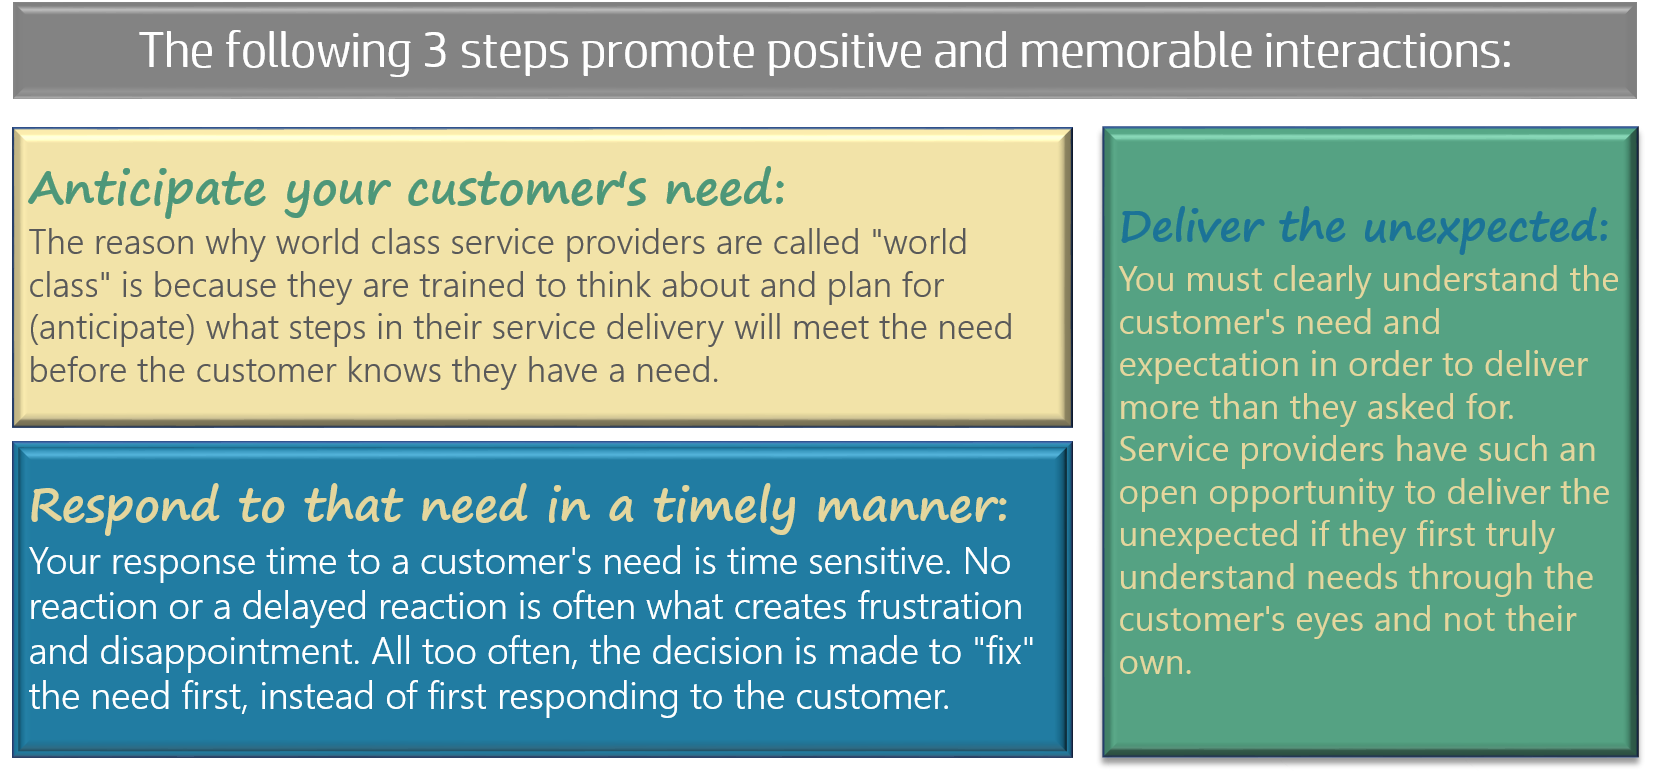 3 steps to Promote Positive and Memorable Interactions2.png